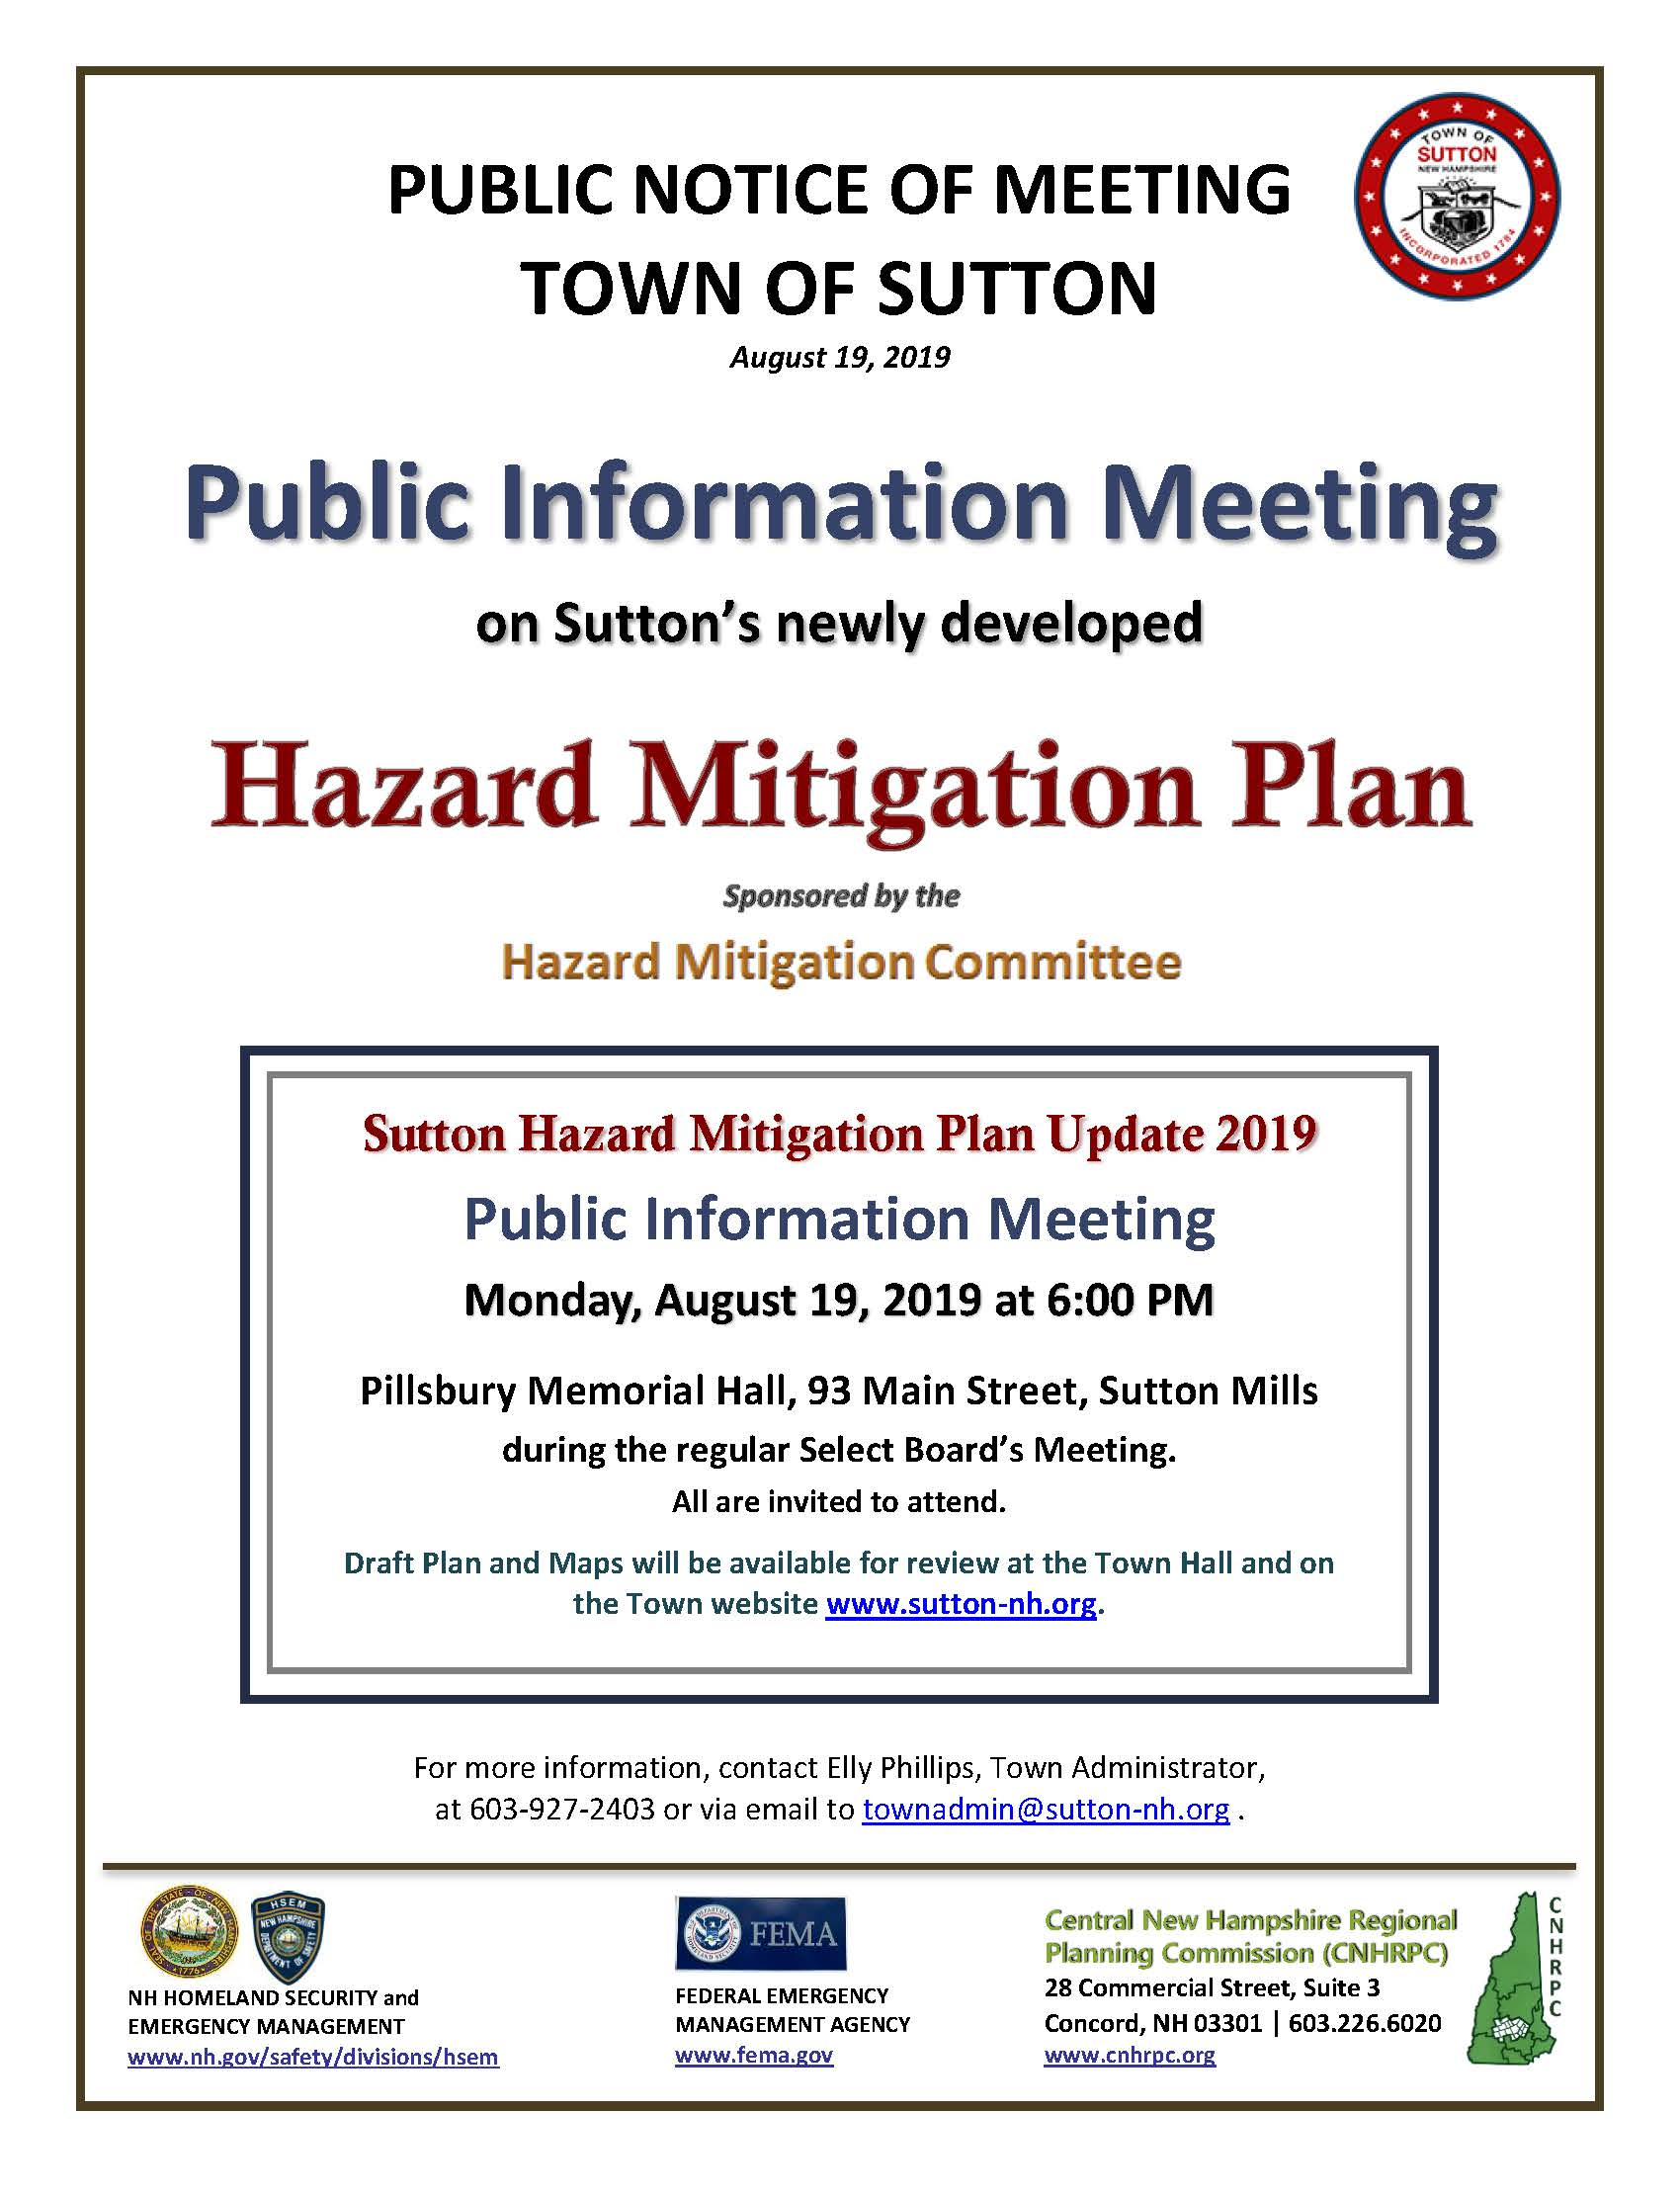 Hazard Mitigation Plan Public Information Meeting @ Pillsbury Memorial Hall | Bradford | New Hampshire | United States